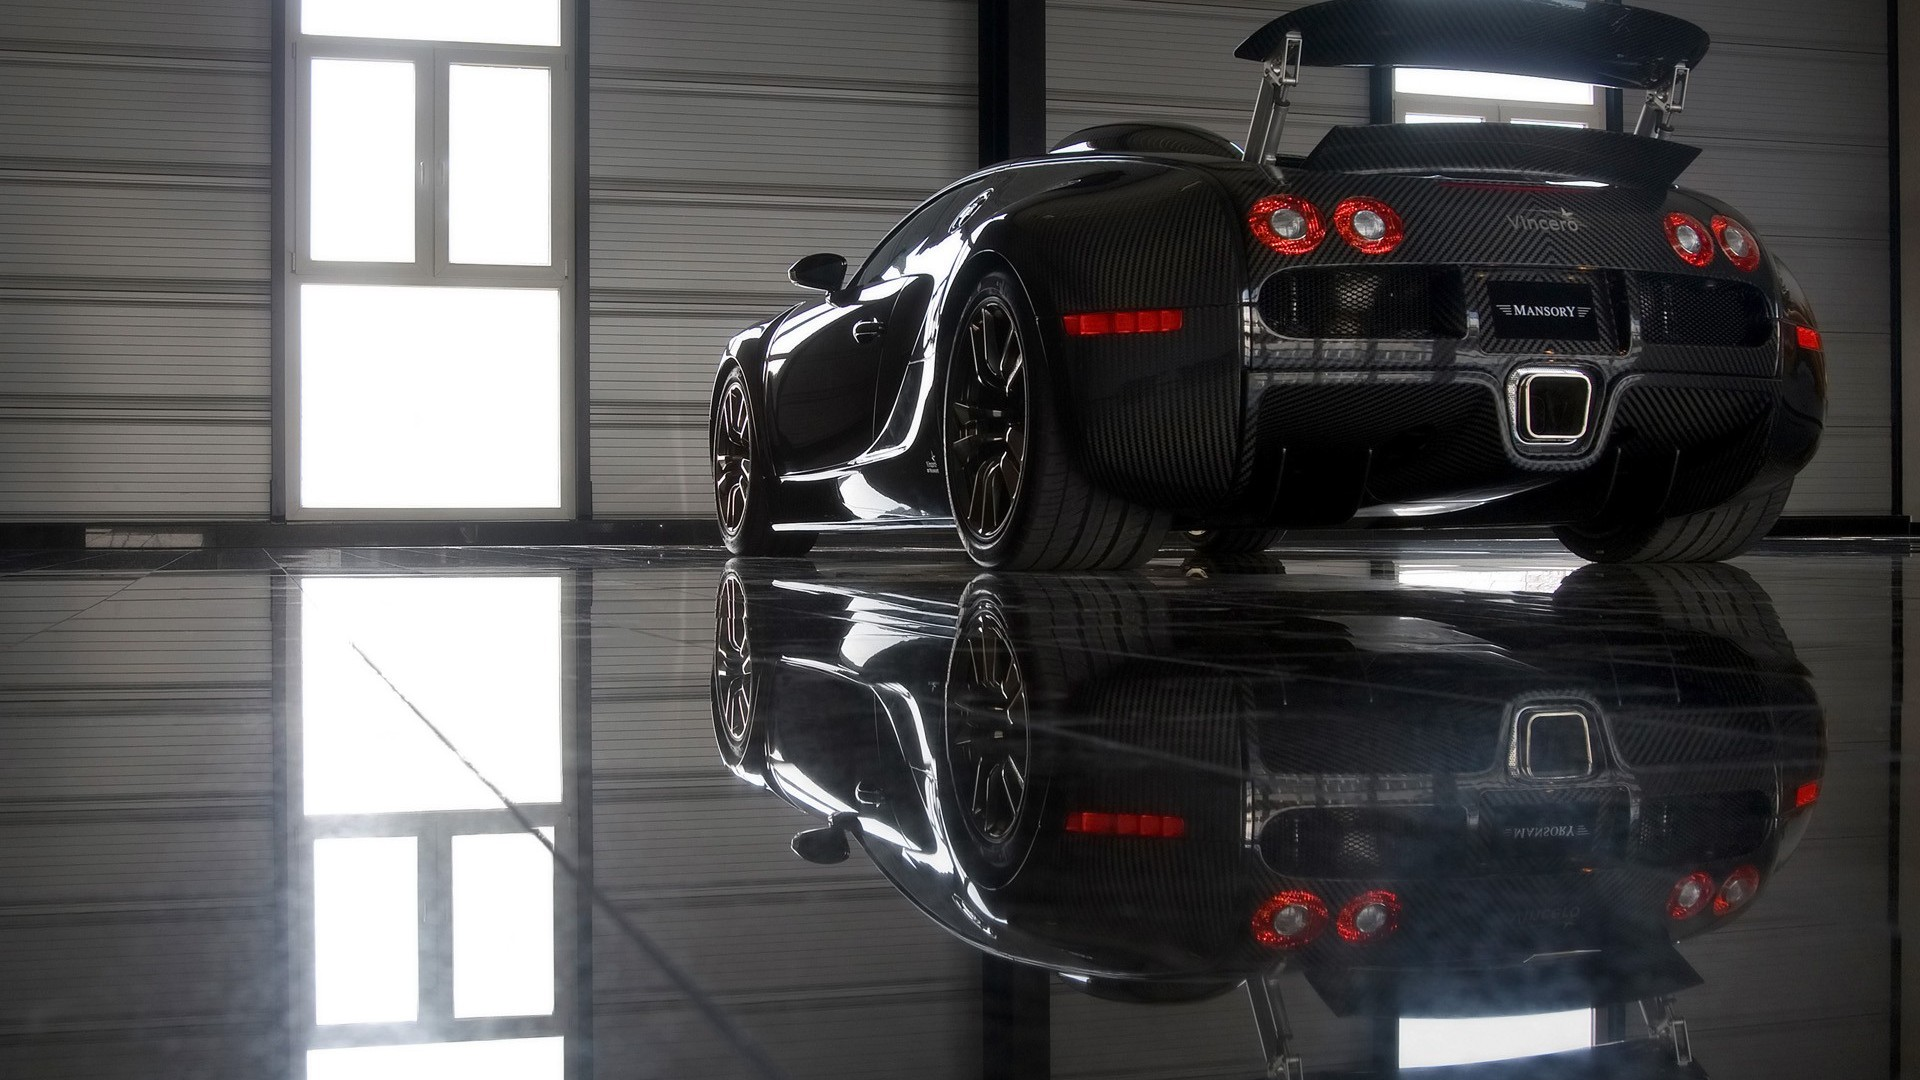 50 bugatti veyron wallpaper hd for laptop. Black Bedroom Furniture Sets. Home Design Ideas